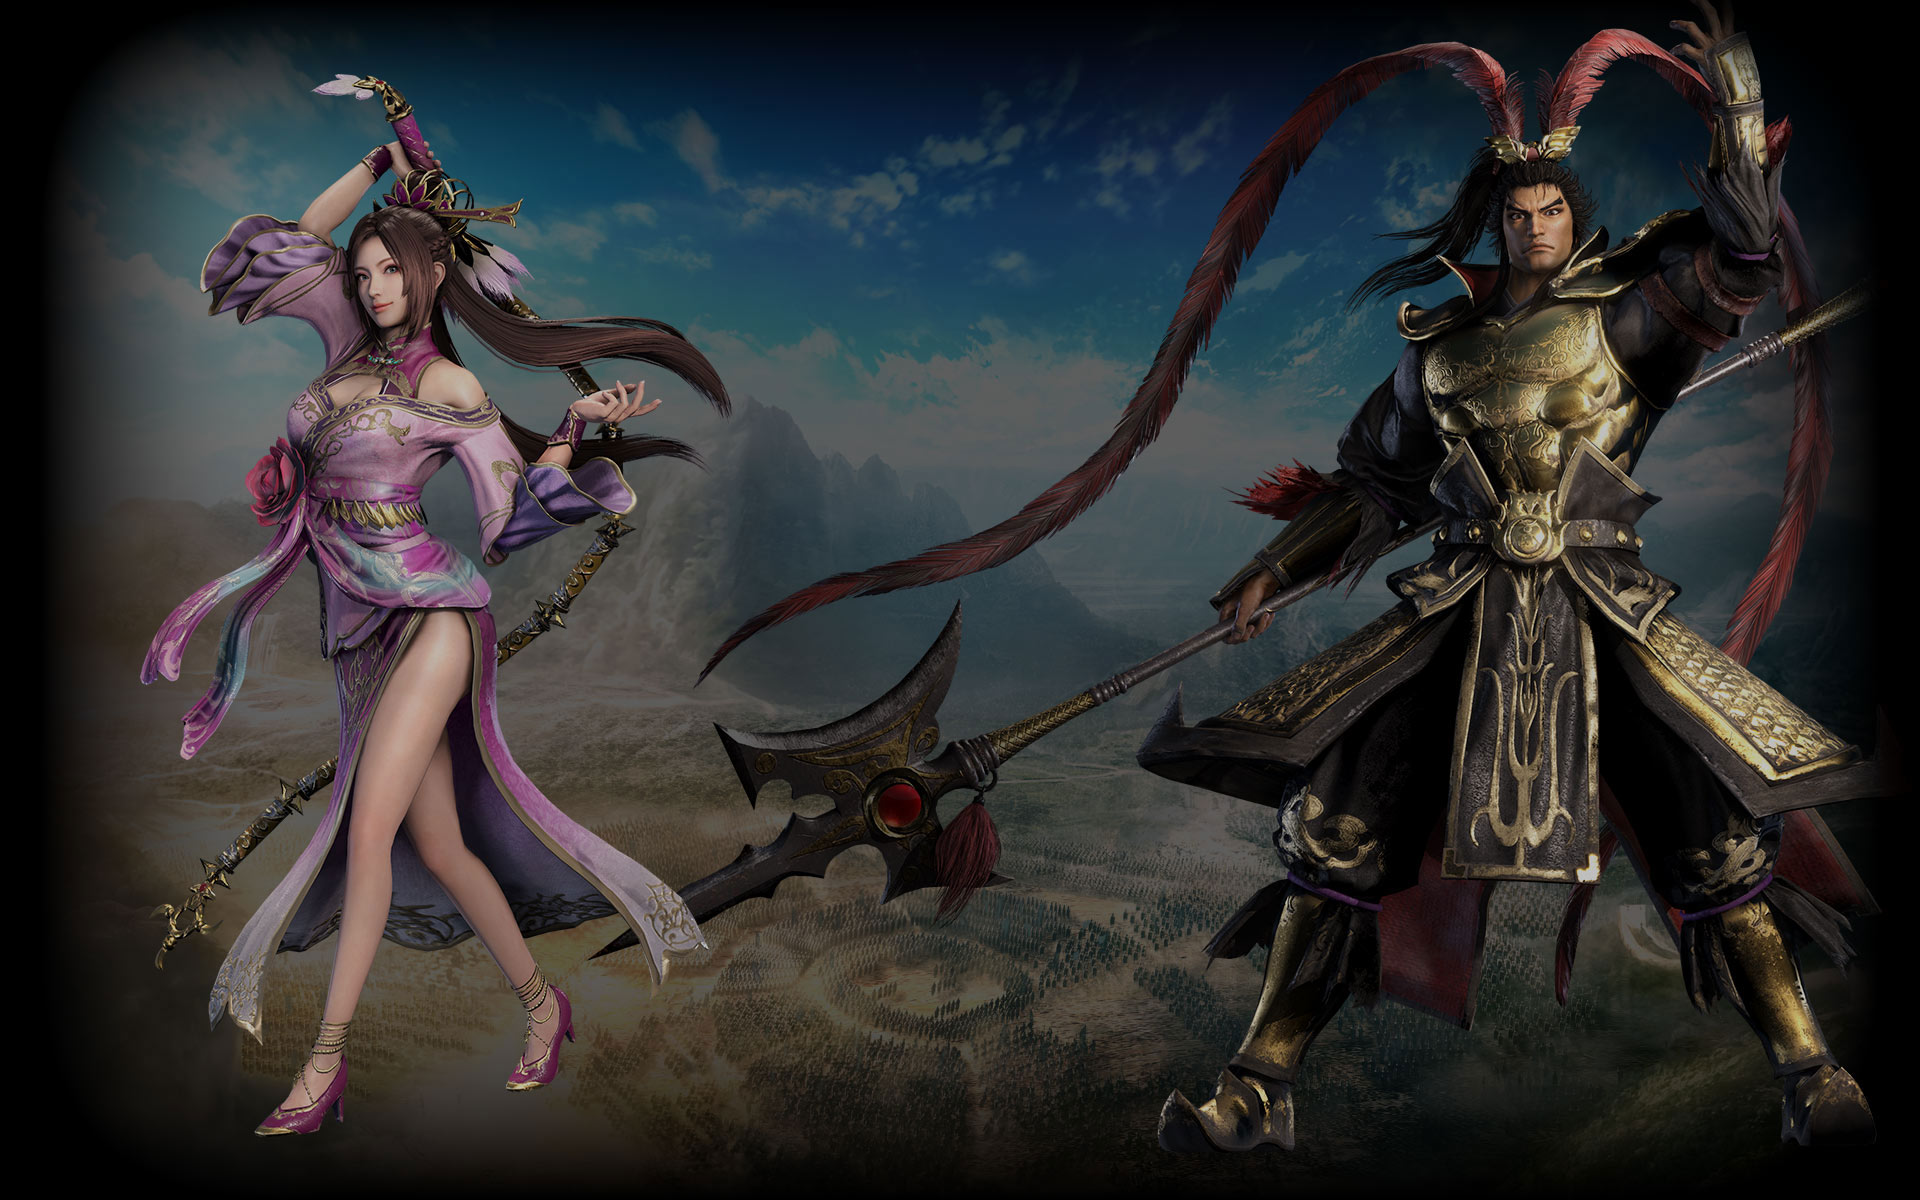 Steam Community Market Listings for 730310 Diaochan Lu Bu 1920x1200